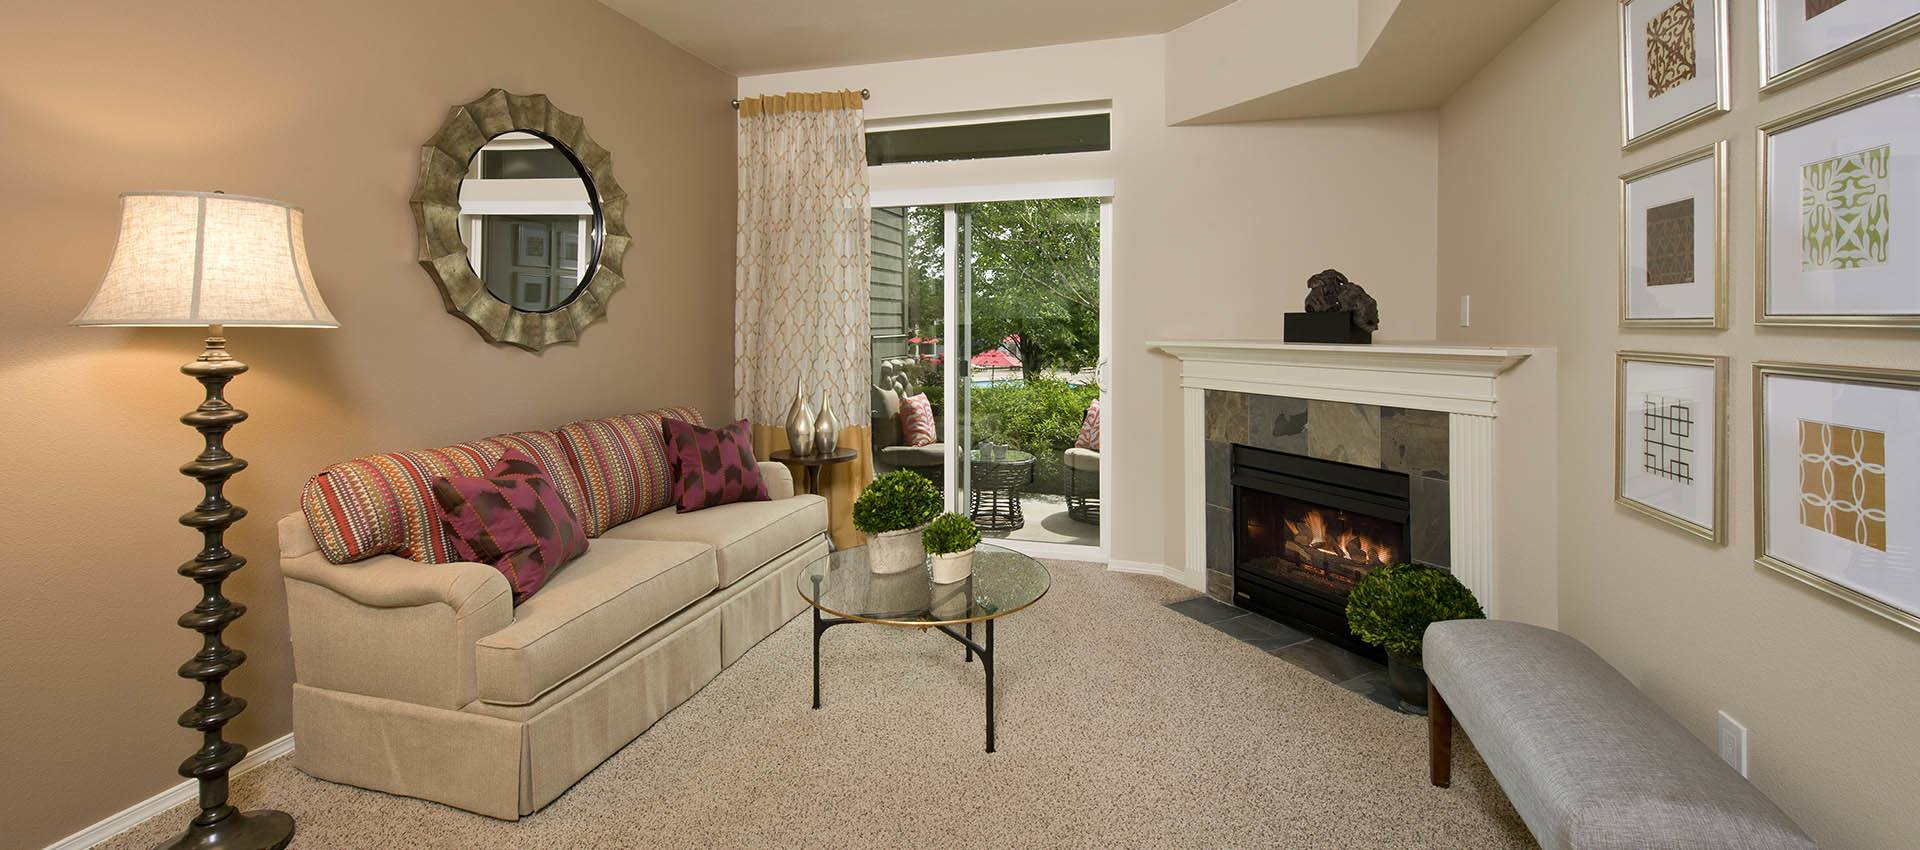 Living Room With Fireplace at Altamont Summit in Happy Valley, OR